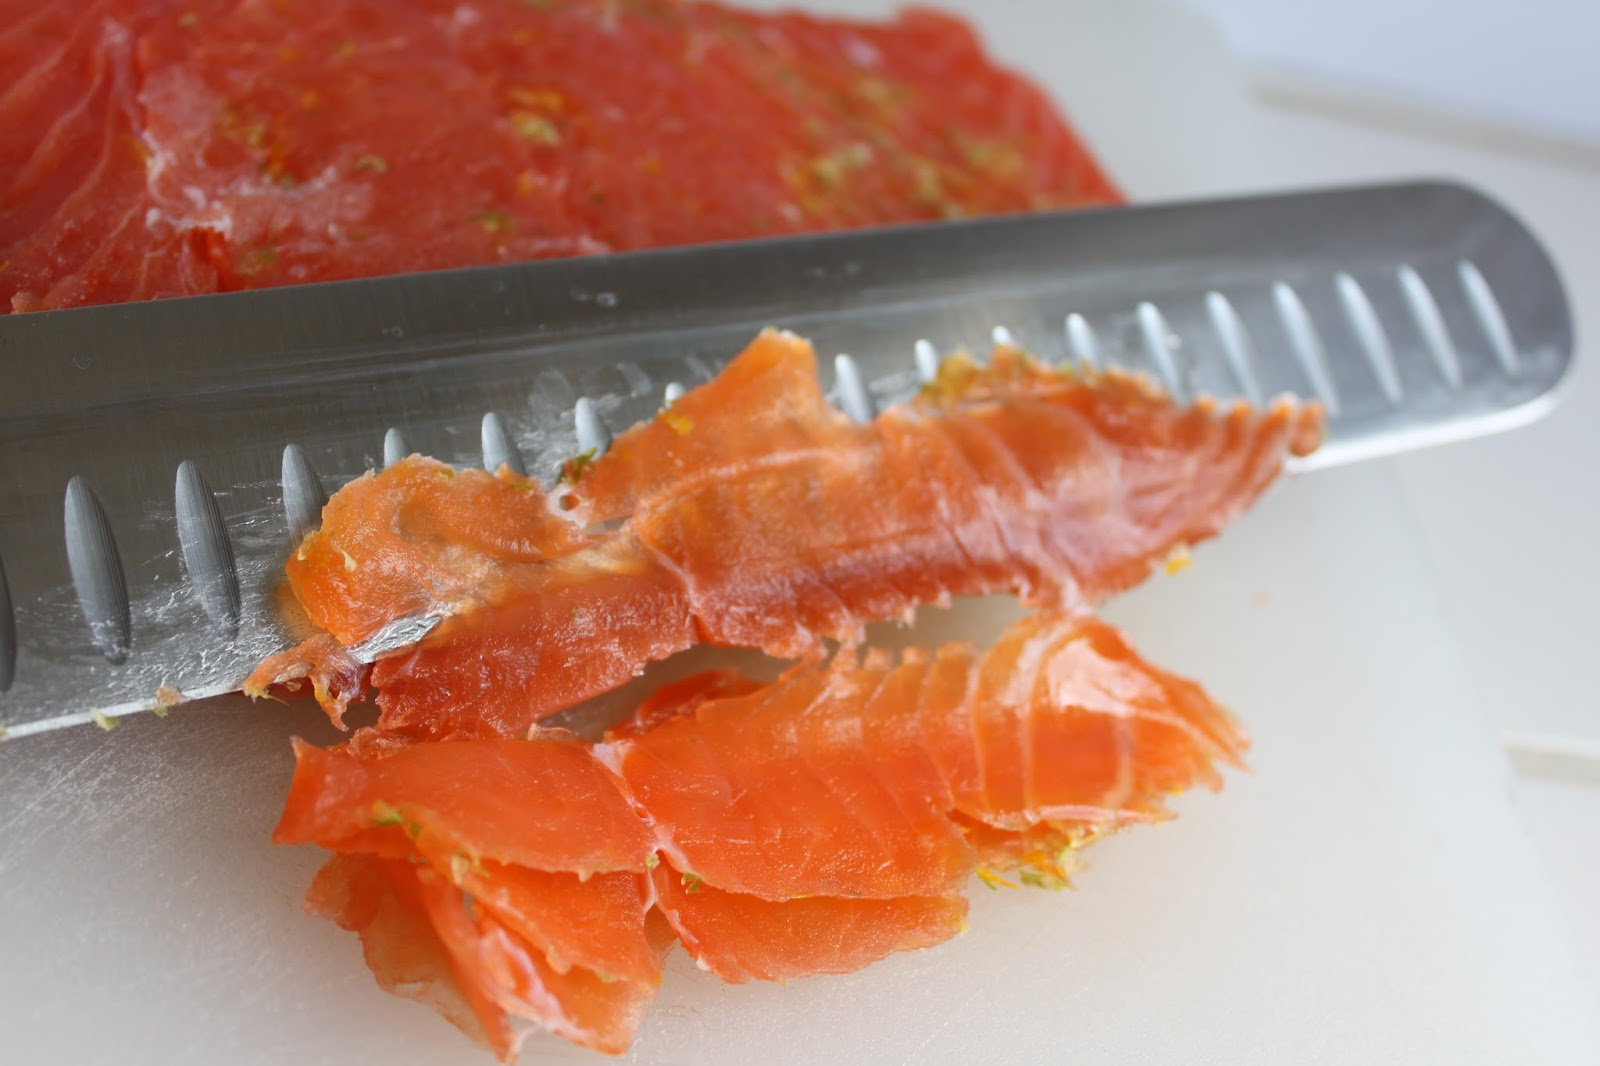 ... citrus cured salmon with inn citrus cured salmon citrus cured salmon